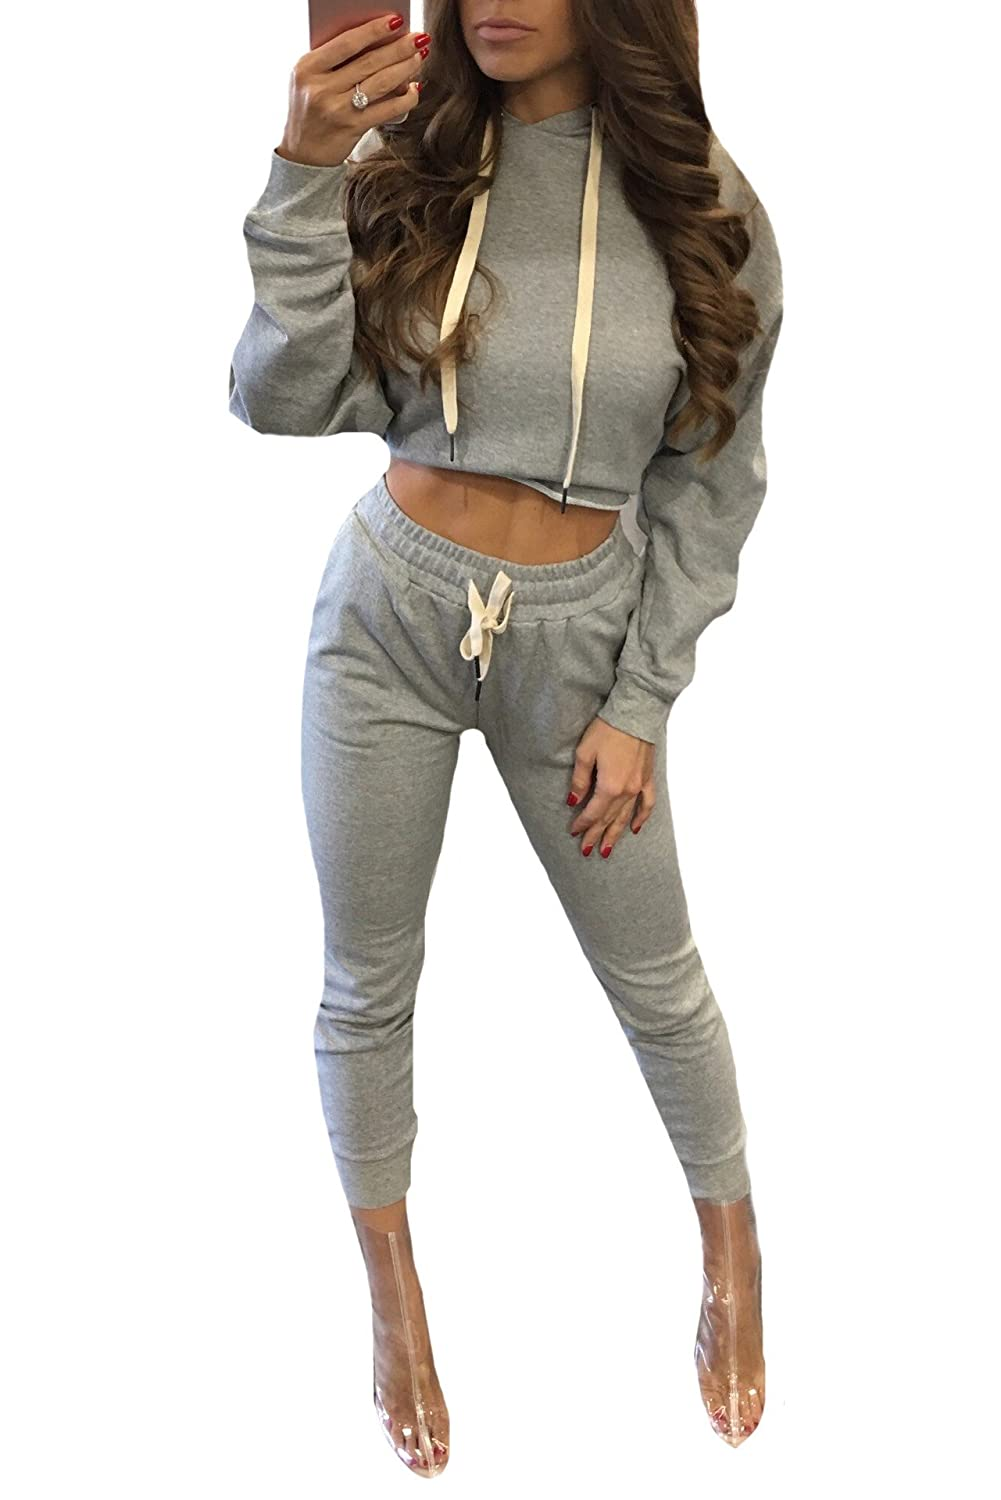 Tootlessly-Women Chándal - para mujer Gris gris US XS: Amazon.es ...